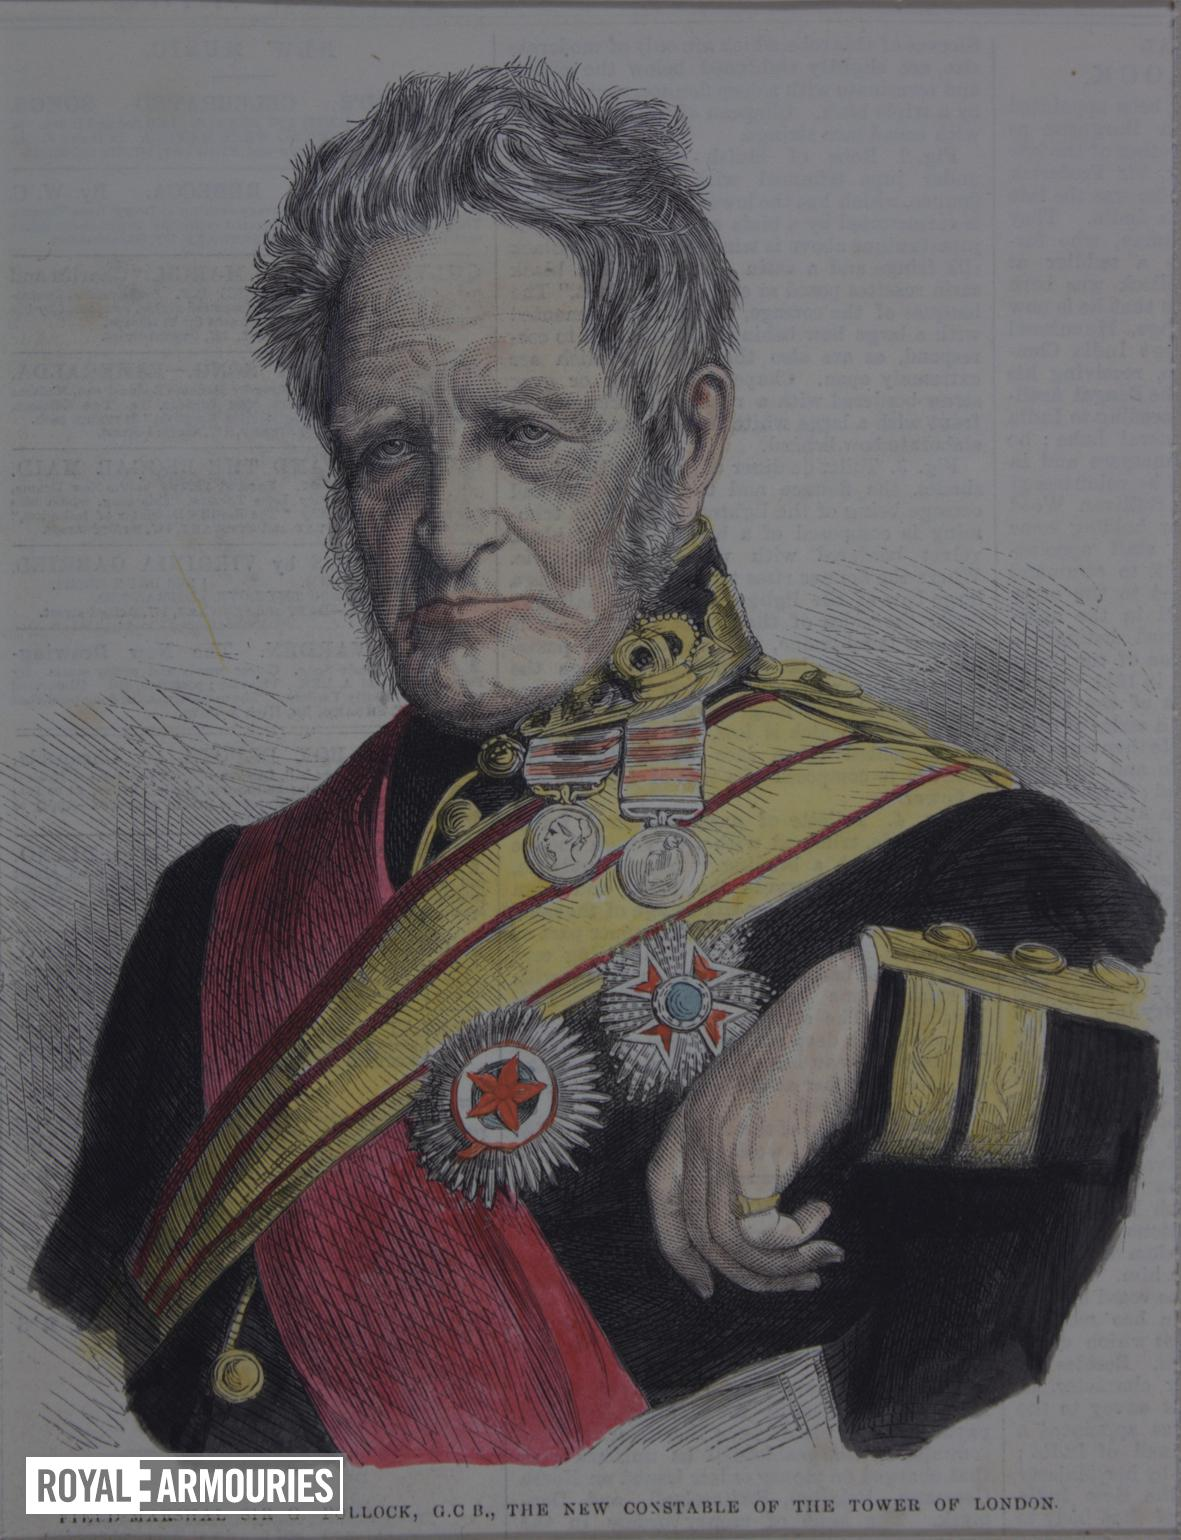 Engraving Portrait of the Constable of the Tower, Field Marshal Sir G Pollock. Extracted from the Illustrated London News and hand coloured.